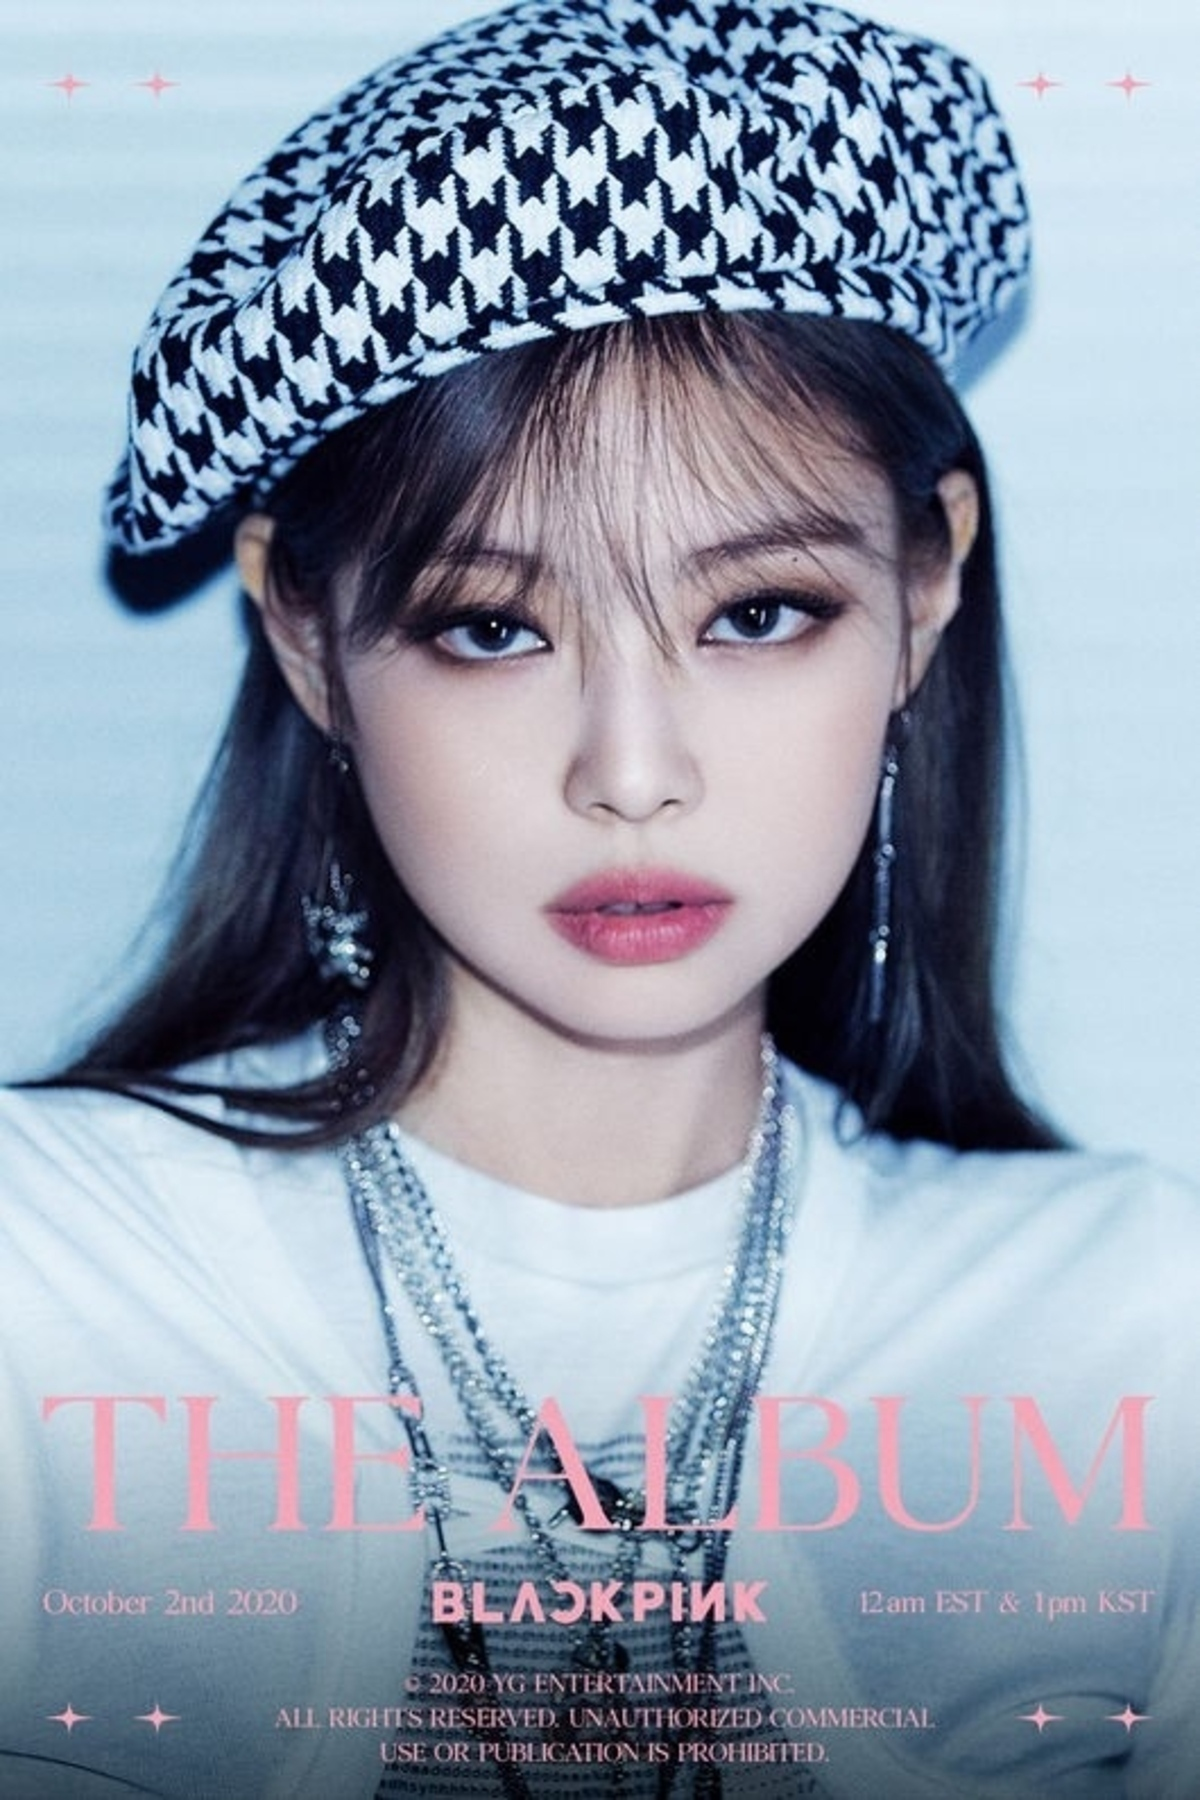 jennie blackpink the album